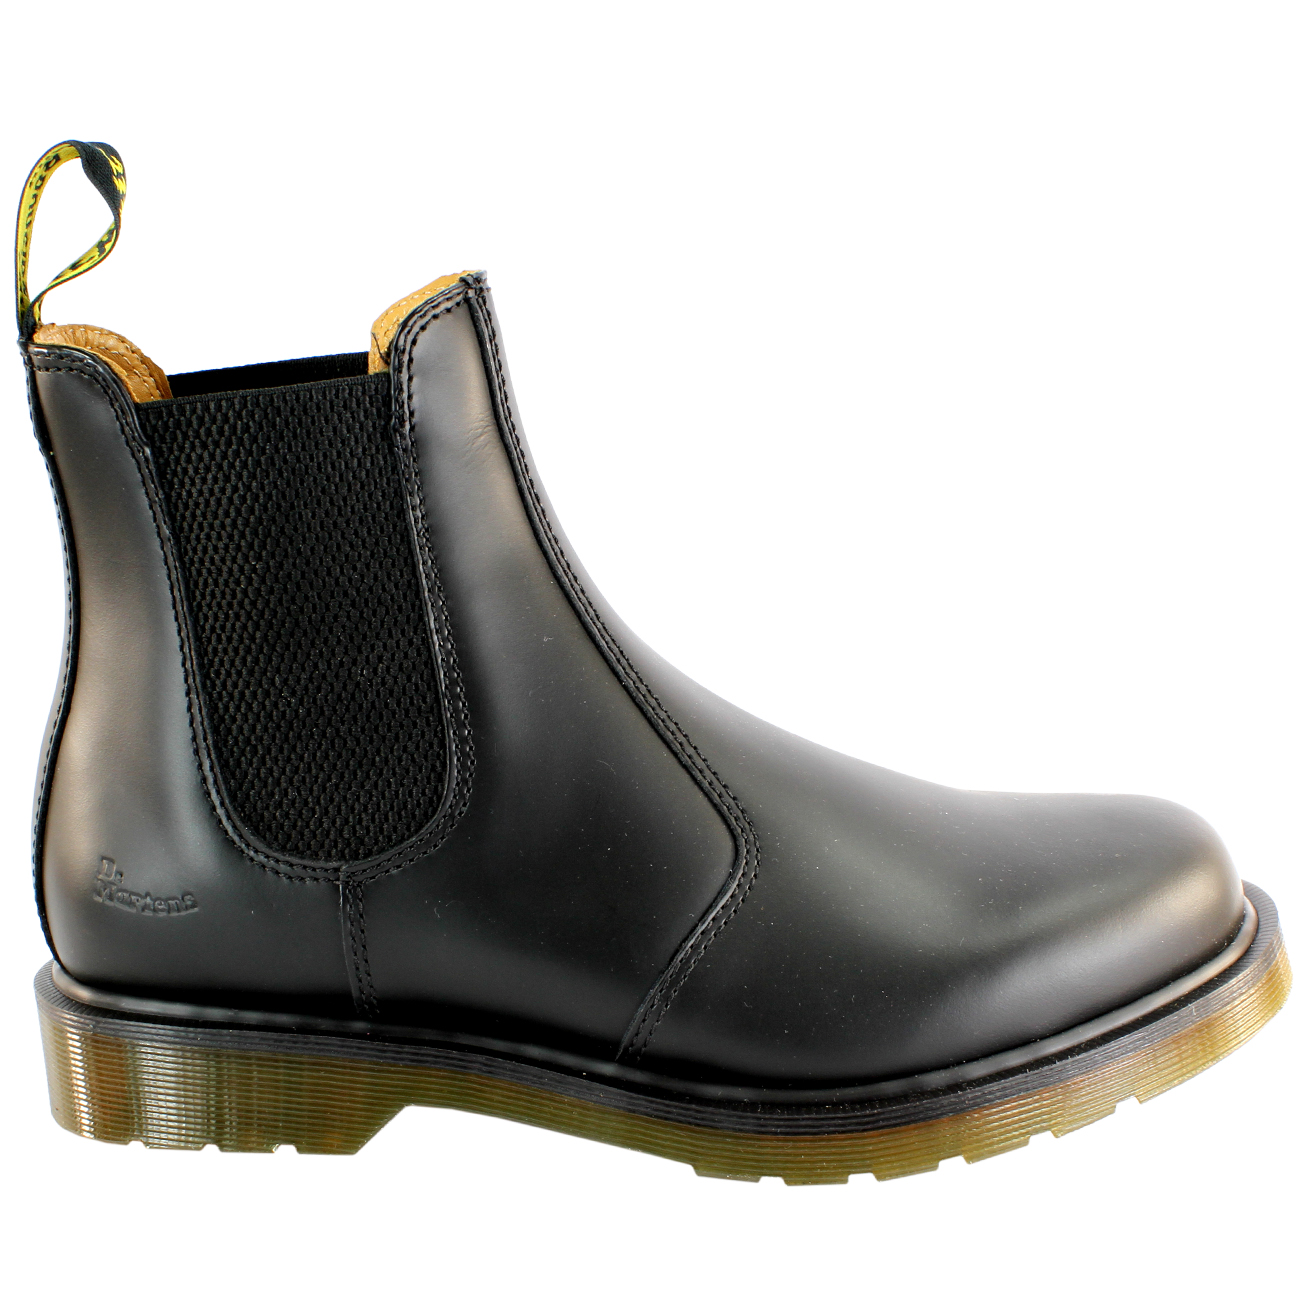 Womens Dr Martens Airwair Leather Chelsea Style Low Heel Ankle Boot ... fcf9746b29